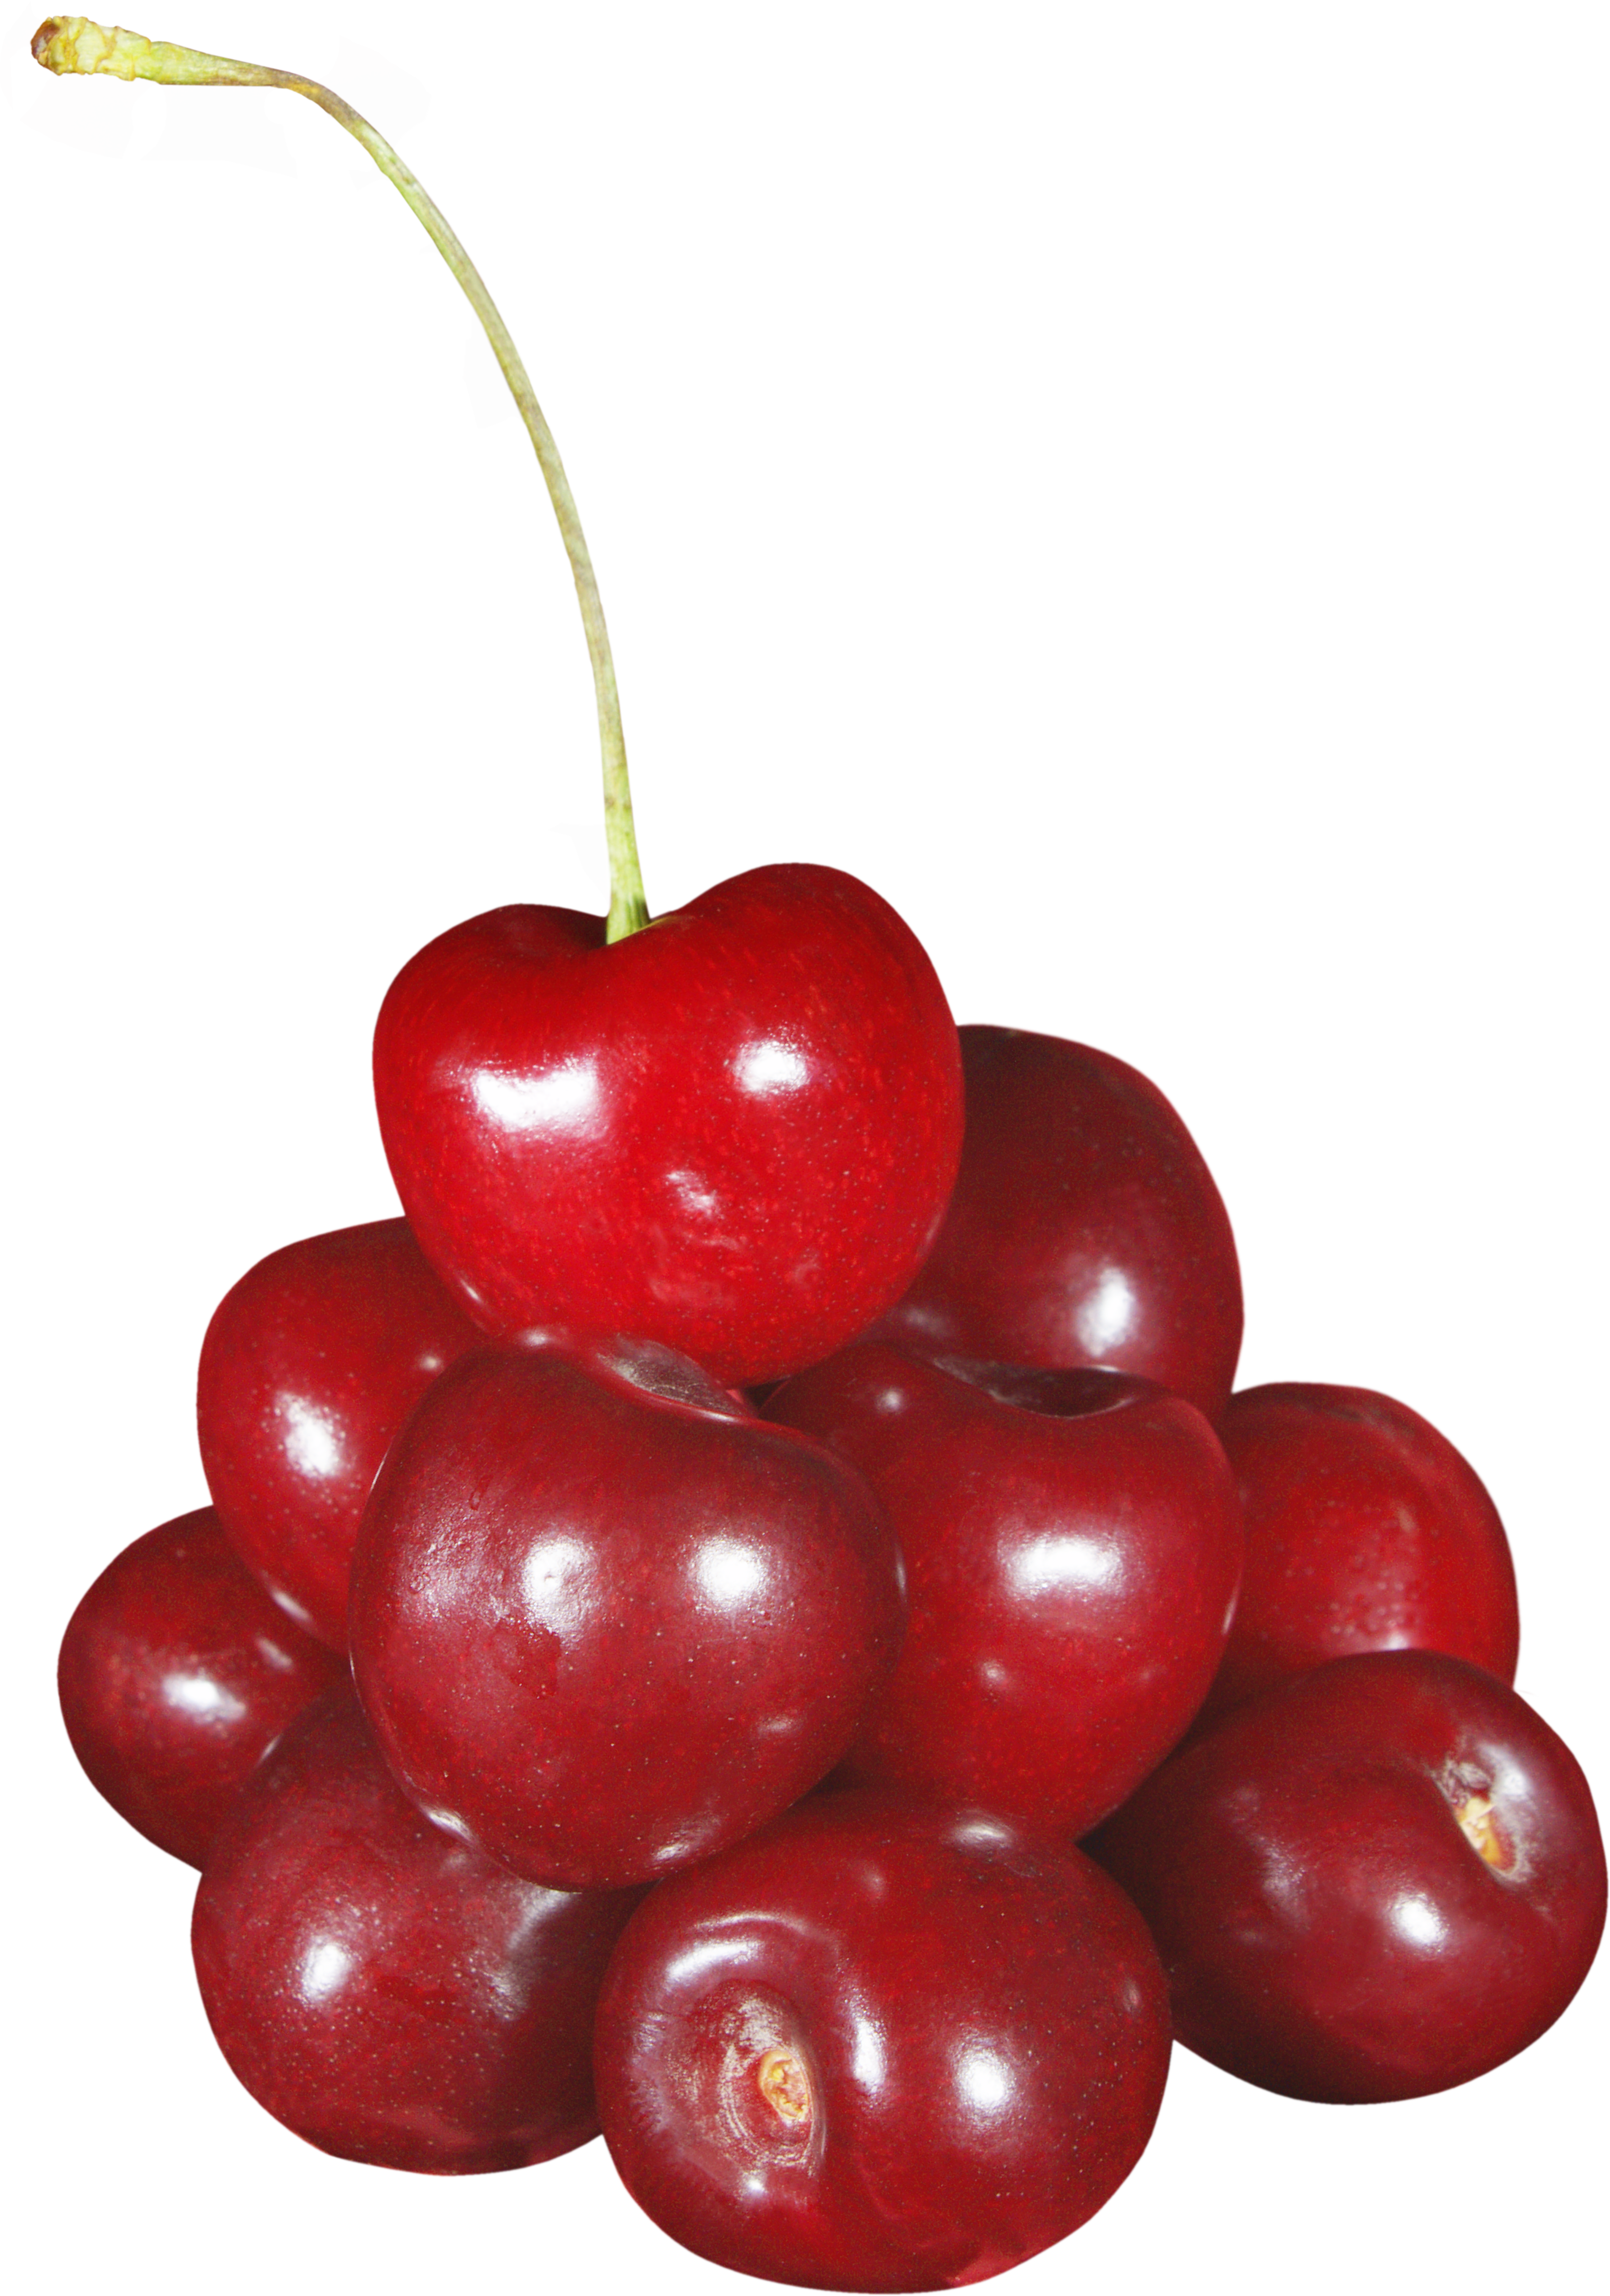 cherry PNG image - Cherry PNG